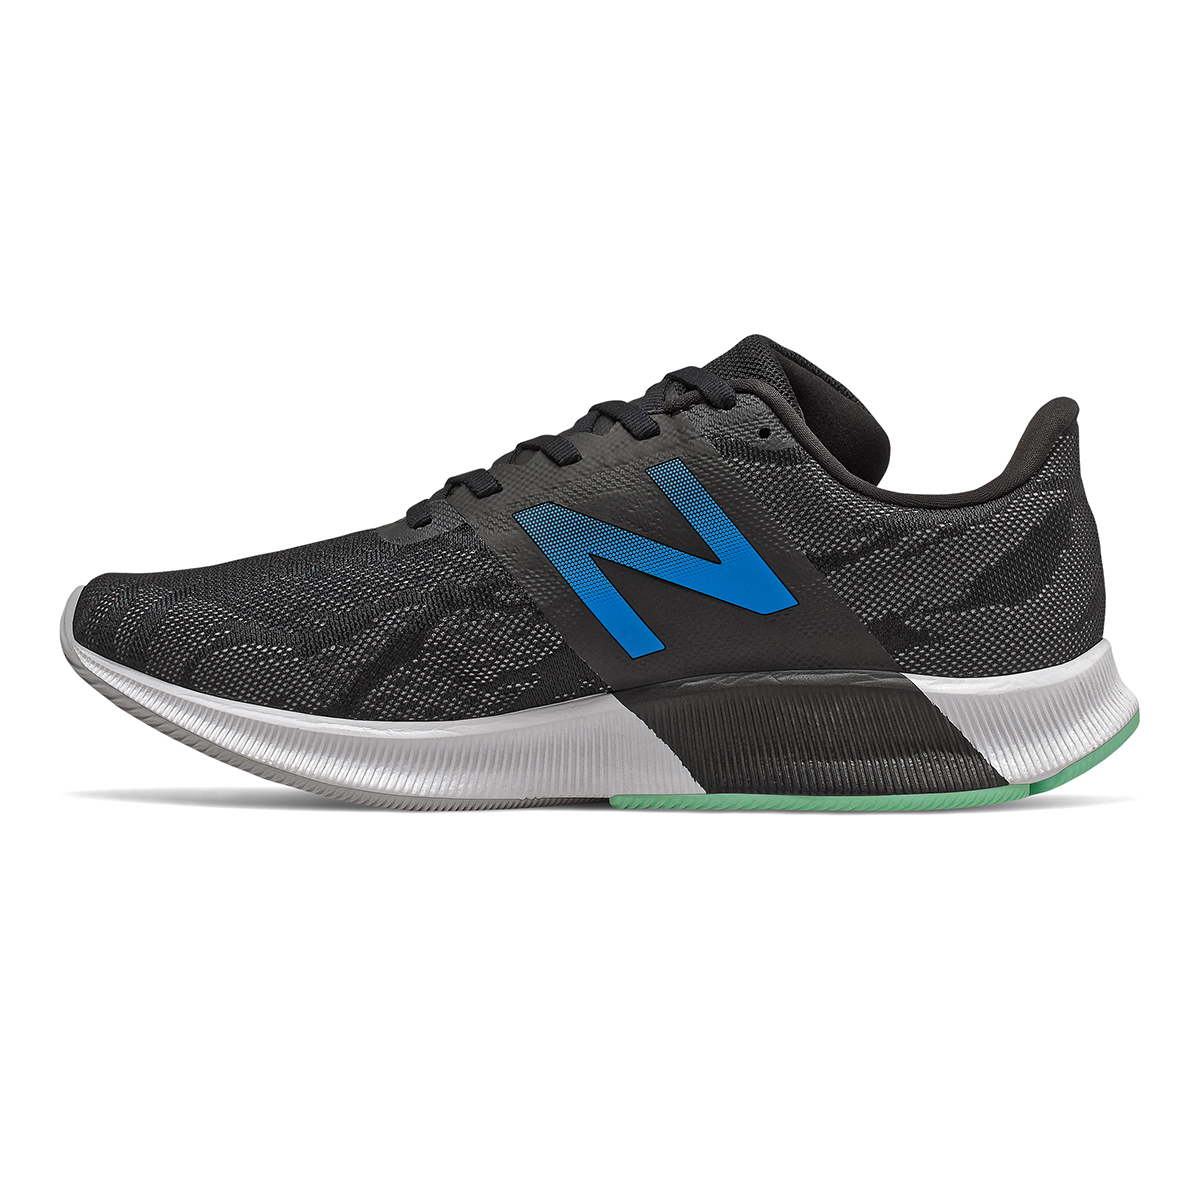 Men's New Balance Fuelcell 890V8 Running Shoe, , large, image 2